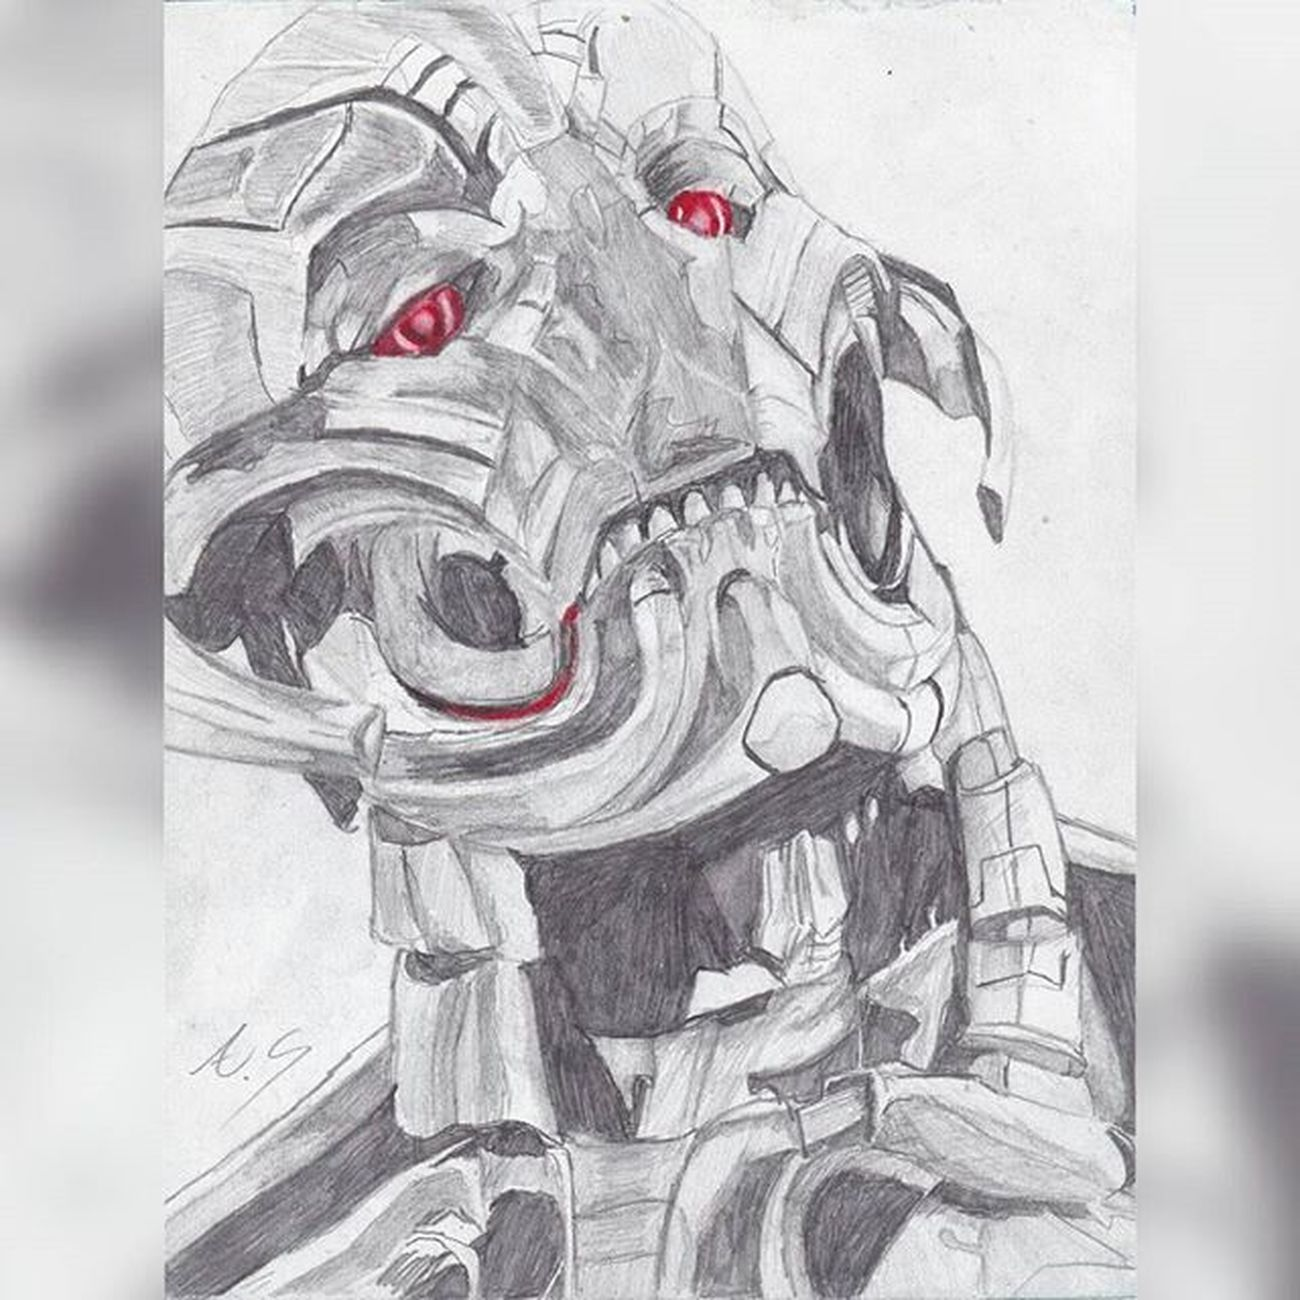 """There are no strings on meee.."" This is a repost of my art but now in way better quality! I hope everyone likes!! Ultroooon!! -u- absolutely obsessed with this guy as many of yah know 😂 Art Sketches Fanart Instart Drawings Ultronprime Ultron Marvelentertainment Mcu Movies Nerd Comics Ageogultron Avengers Theavengers JamesSpader Villians Disney Marvel Portrait Illustration"